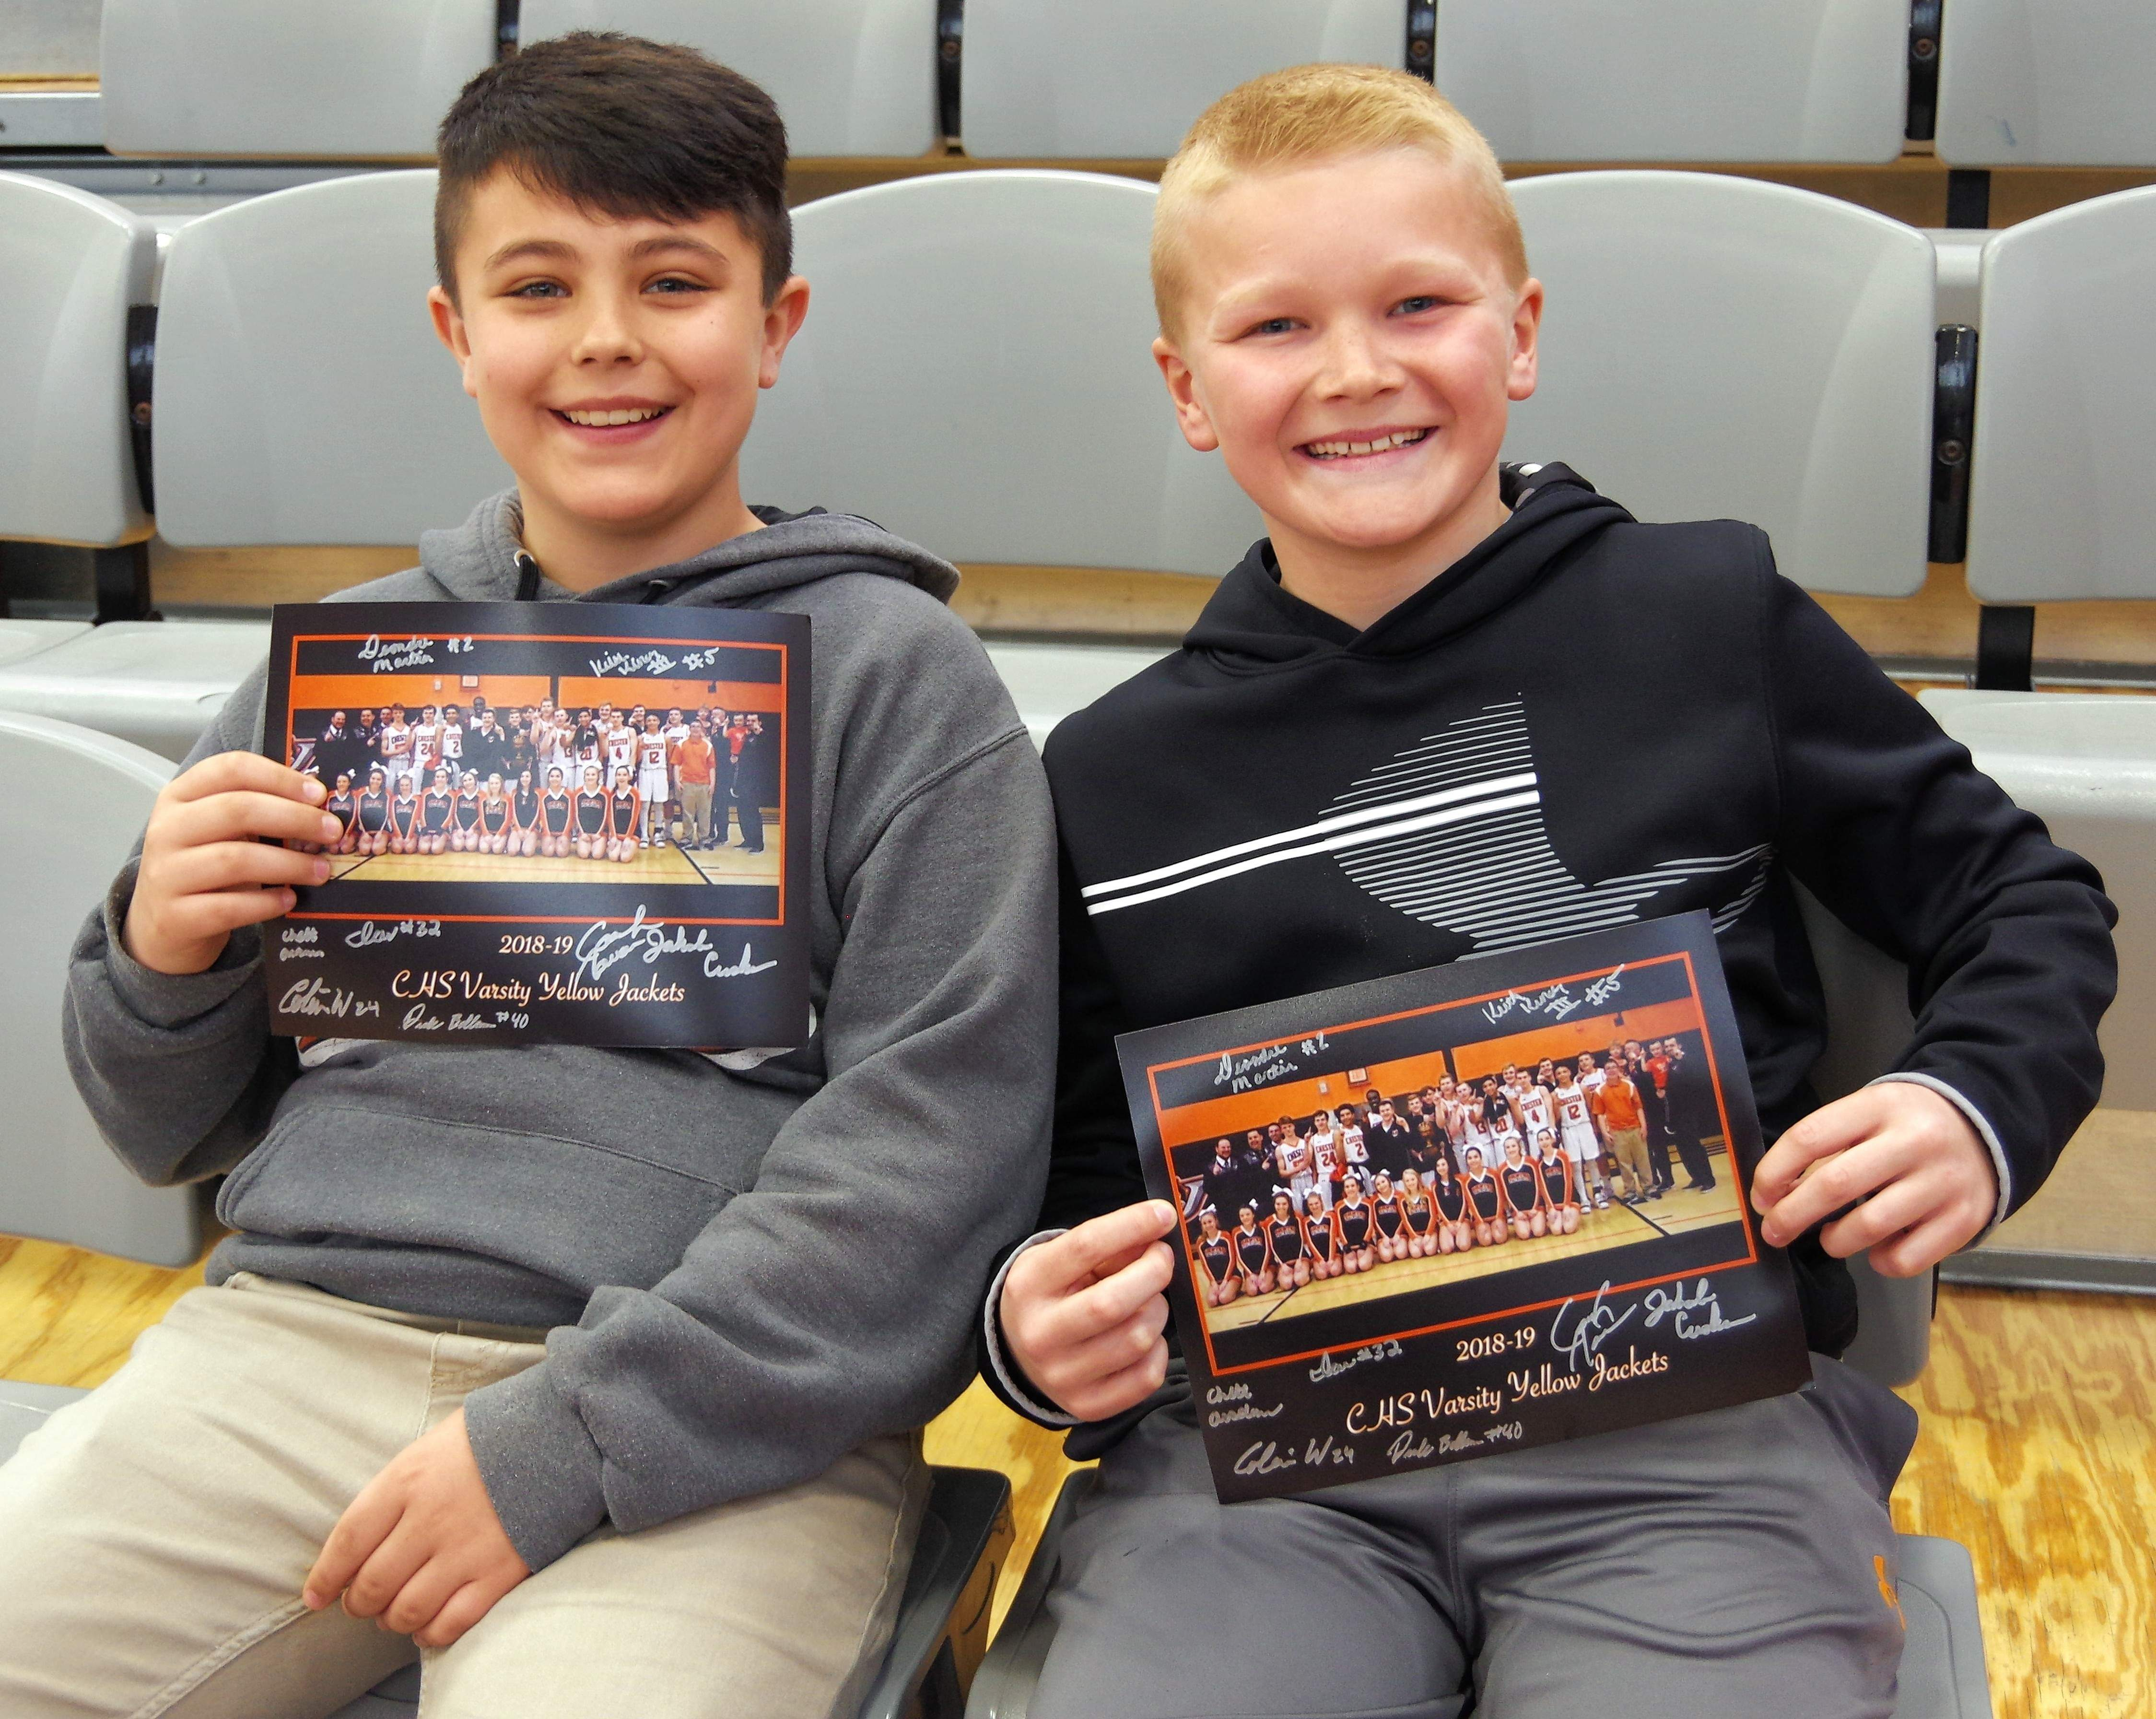 Fifth graders Caleb Richmond, left and Trayton Peters proudly show off their autographed CHS Varsity Basketball team photos.